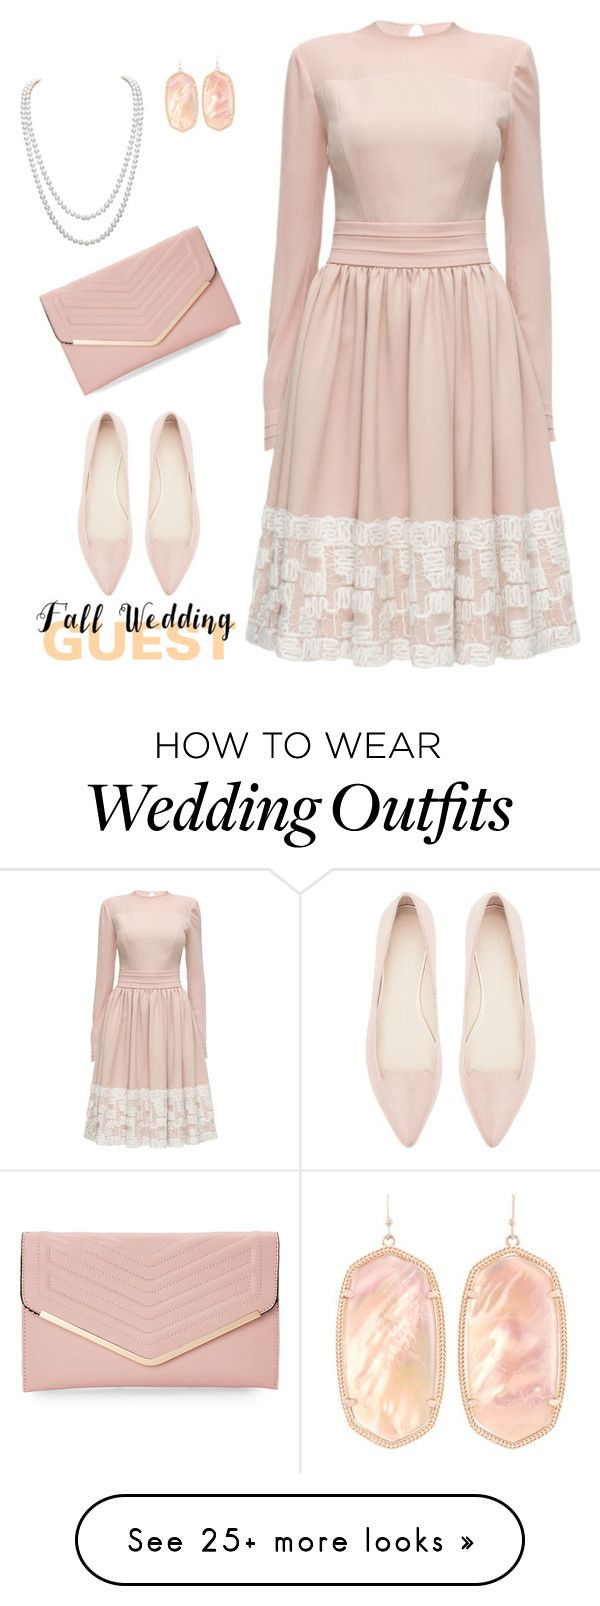 Dresses to wear to a fall wedding for a guest  Fall Wedding Guest